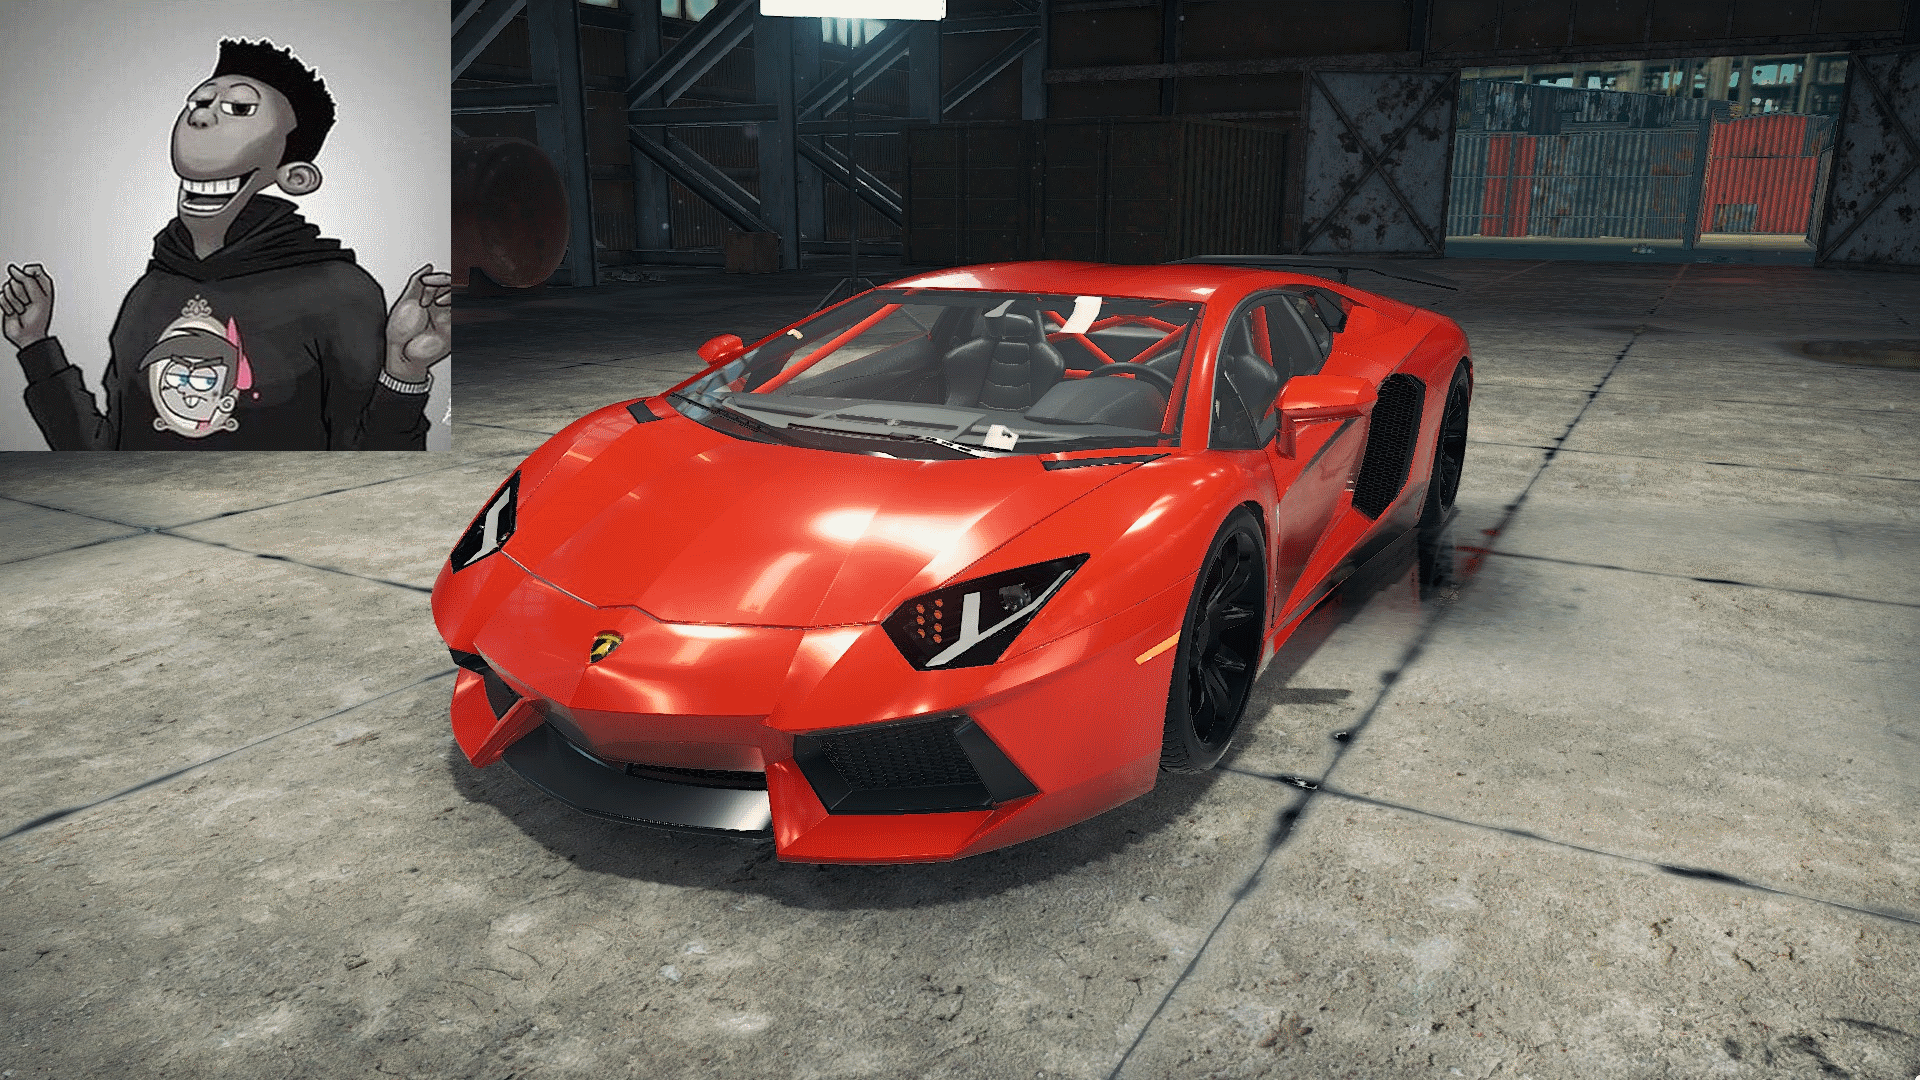 Steam Workshop :: Lamborghini Aventador LP700-4